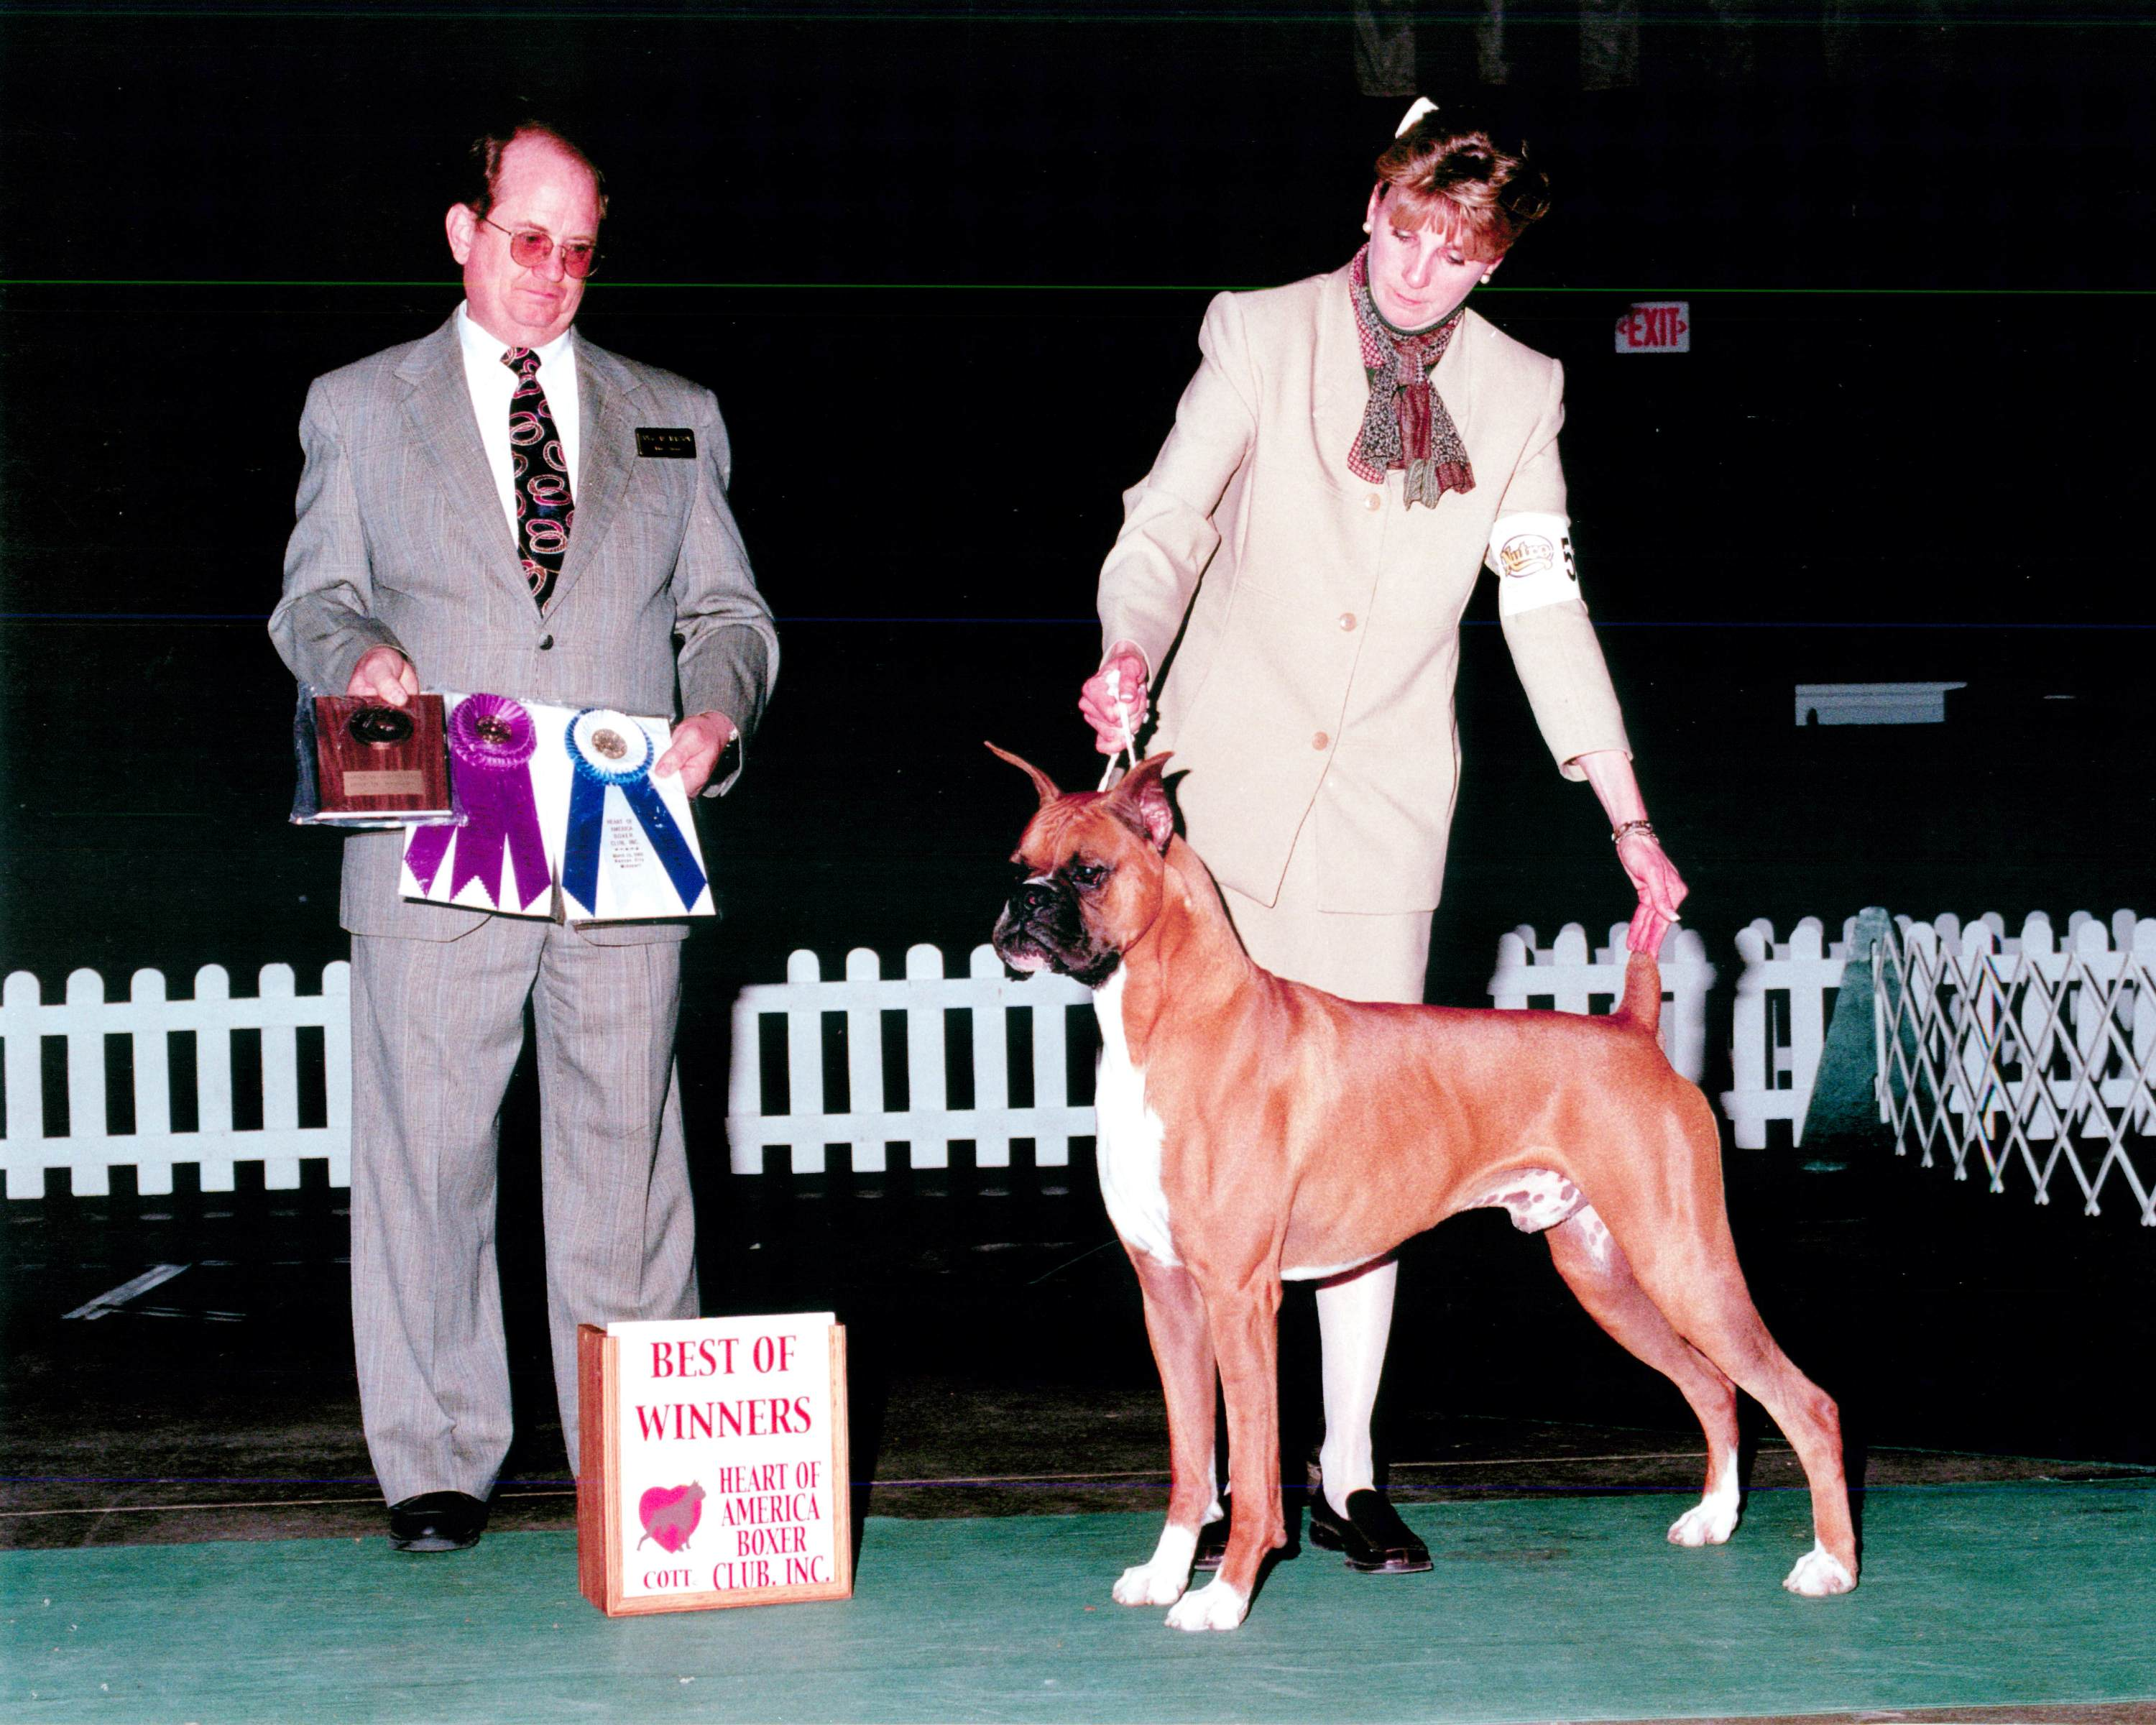 Best of Winners & Winners Dog @ 2002 Specialty Show #1